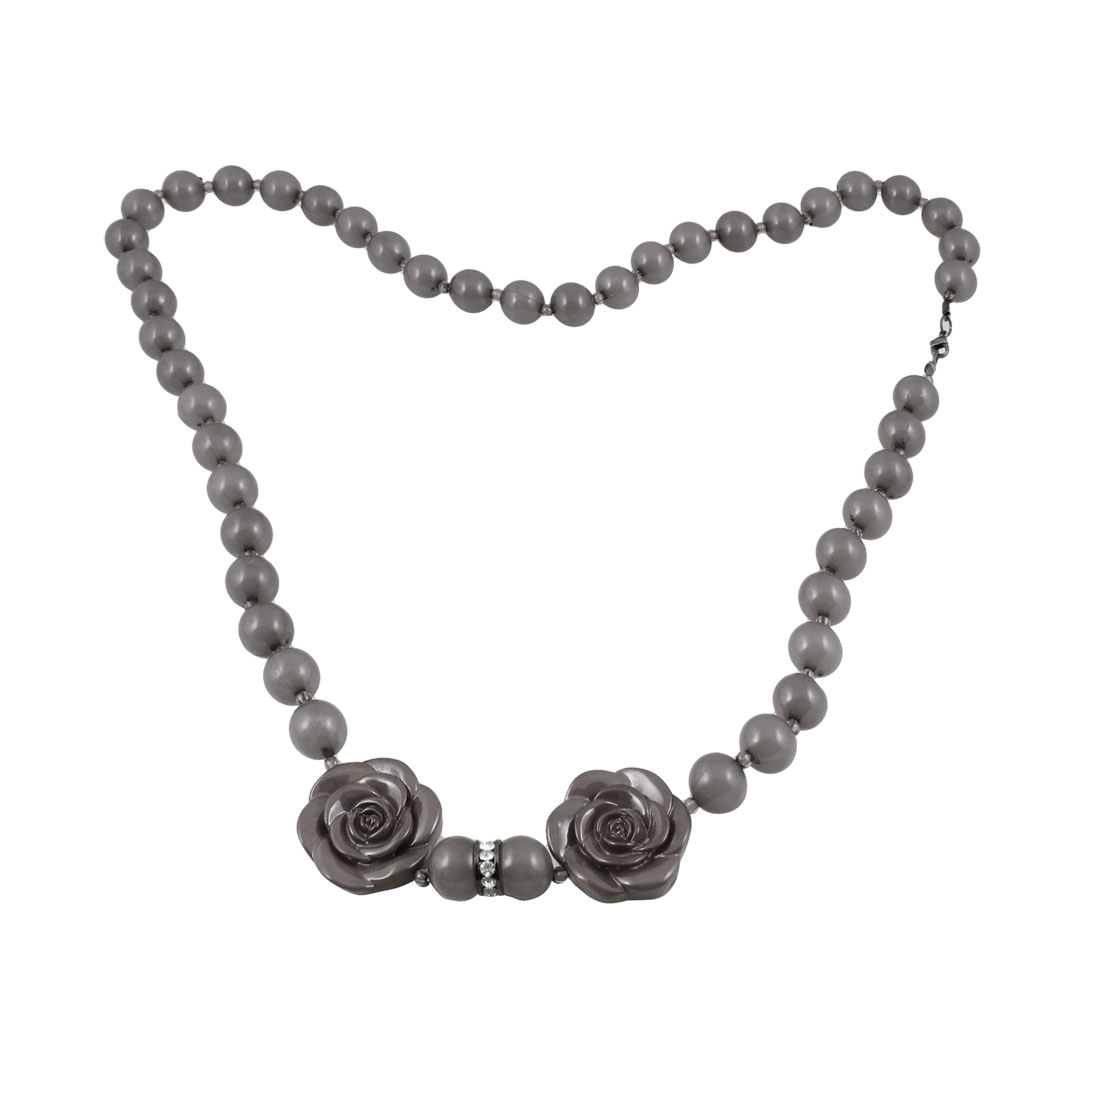 Woman Rose Flower Decor Metal Lobster Clasp Plastic Silver Gray Beads Sweater Necklace